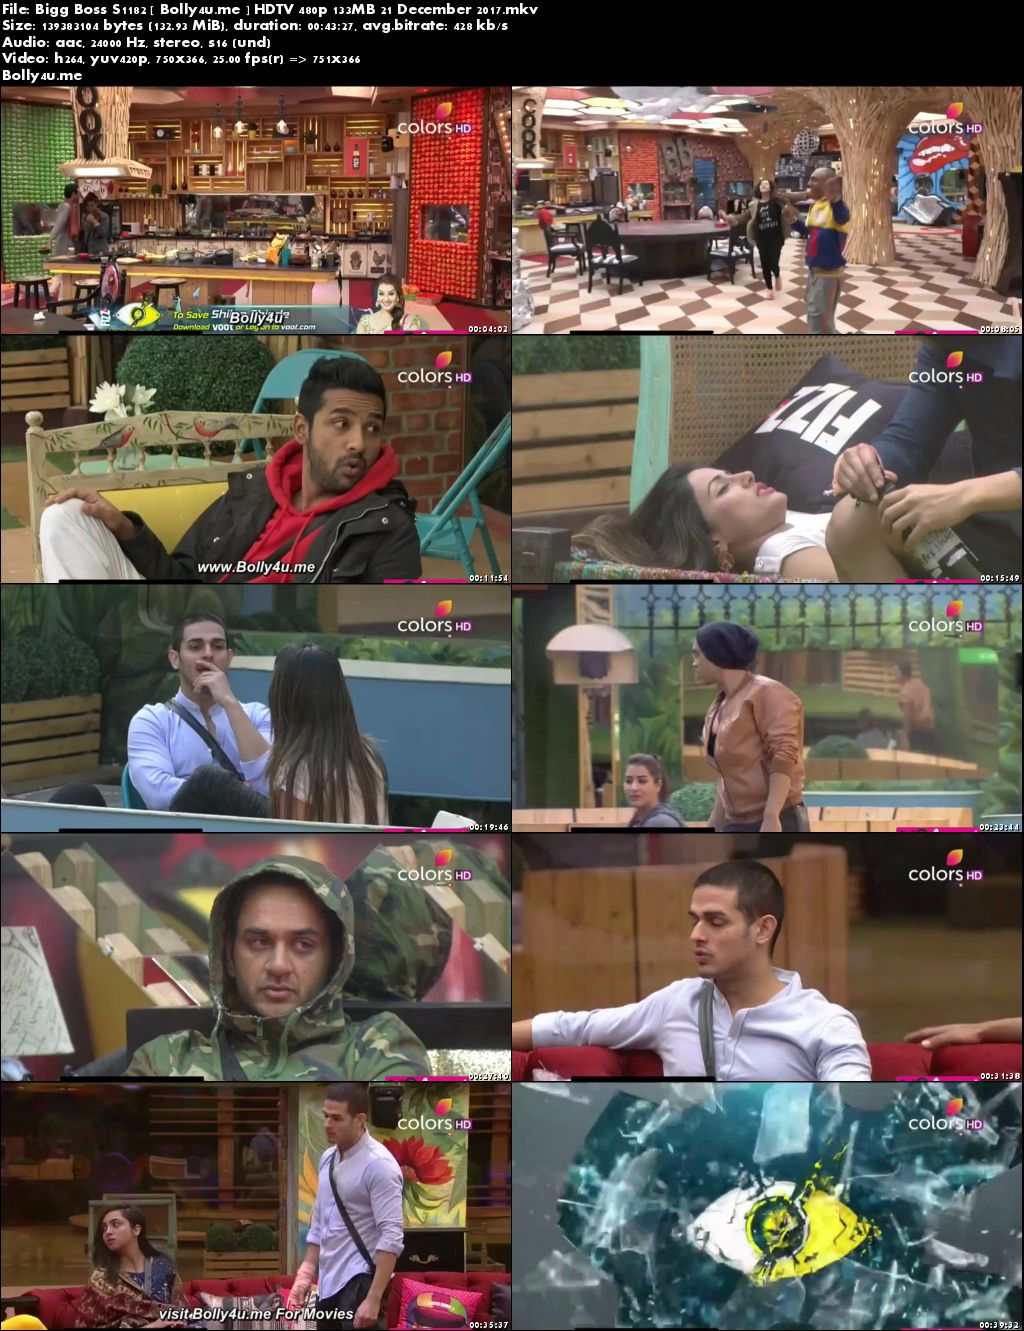 Bigg Boss S1182 HDTV 480p 130MB 21 Dec 2017 Download